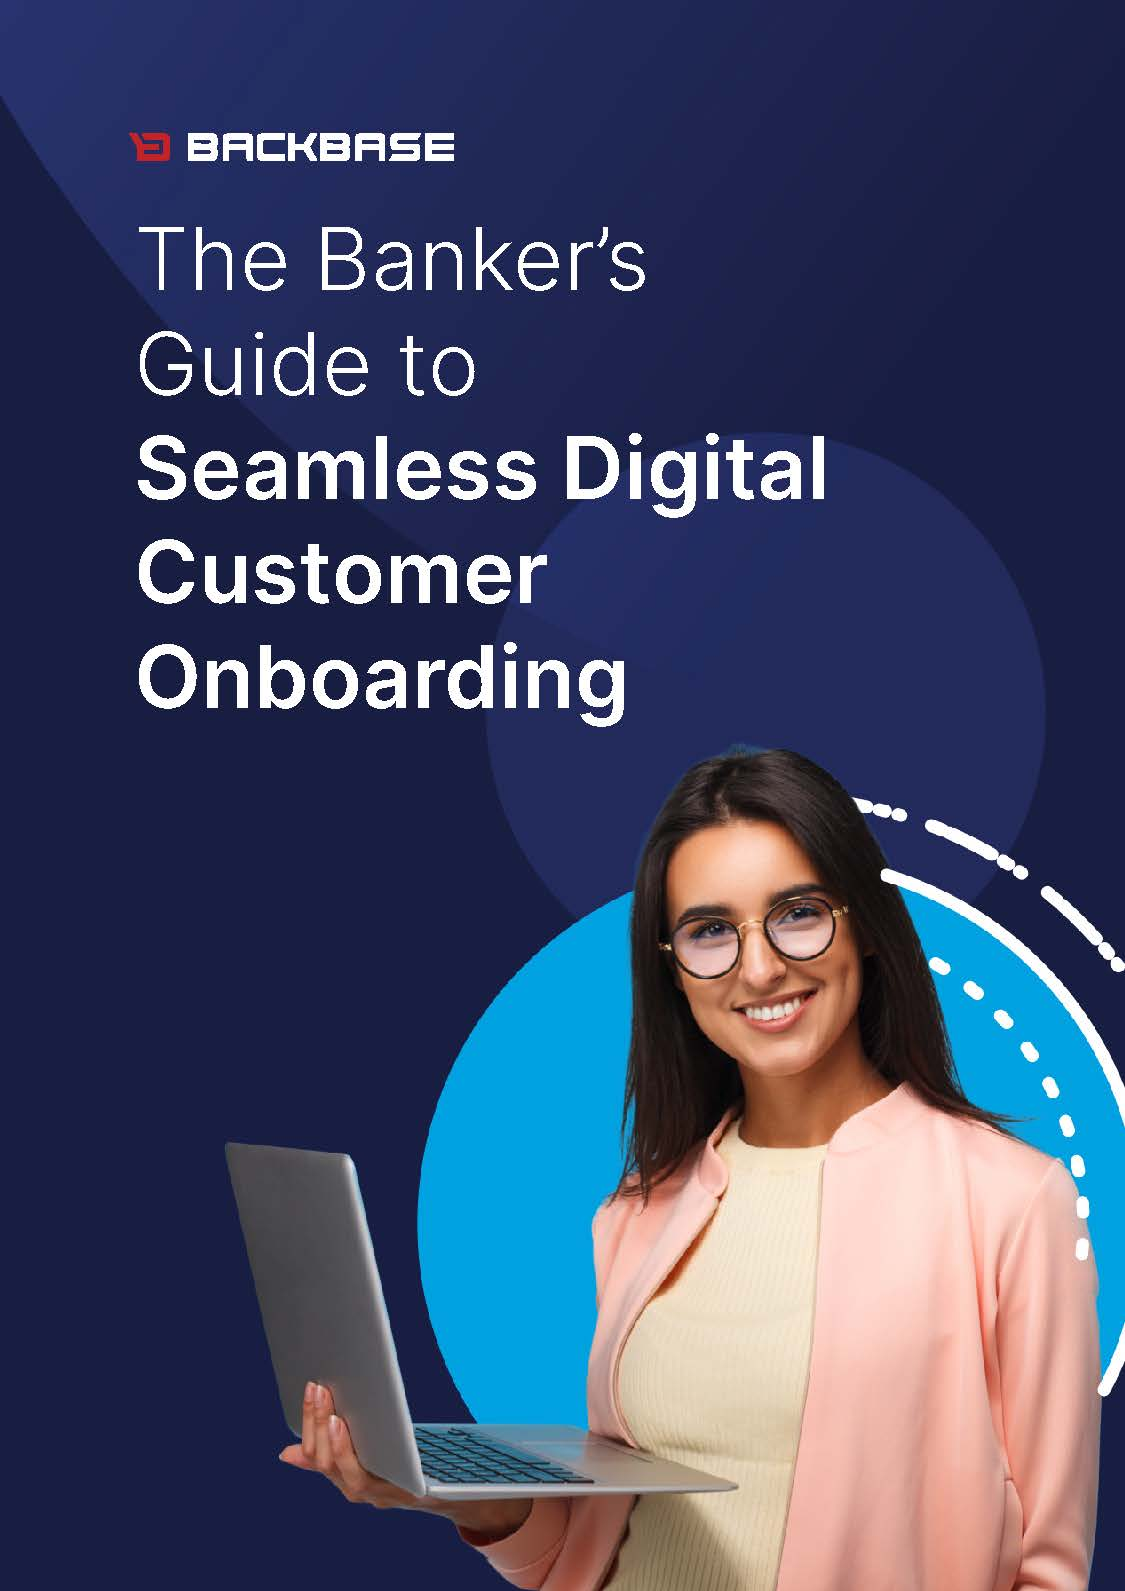 Backbase The Bankers Guide to Seamless Digital Customer Onboarding - Three reasons for banks to streamline legacy systems and go digital